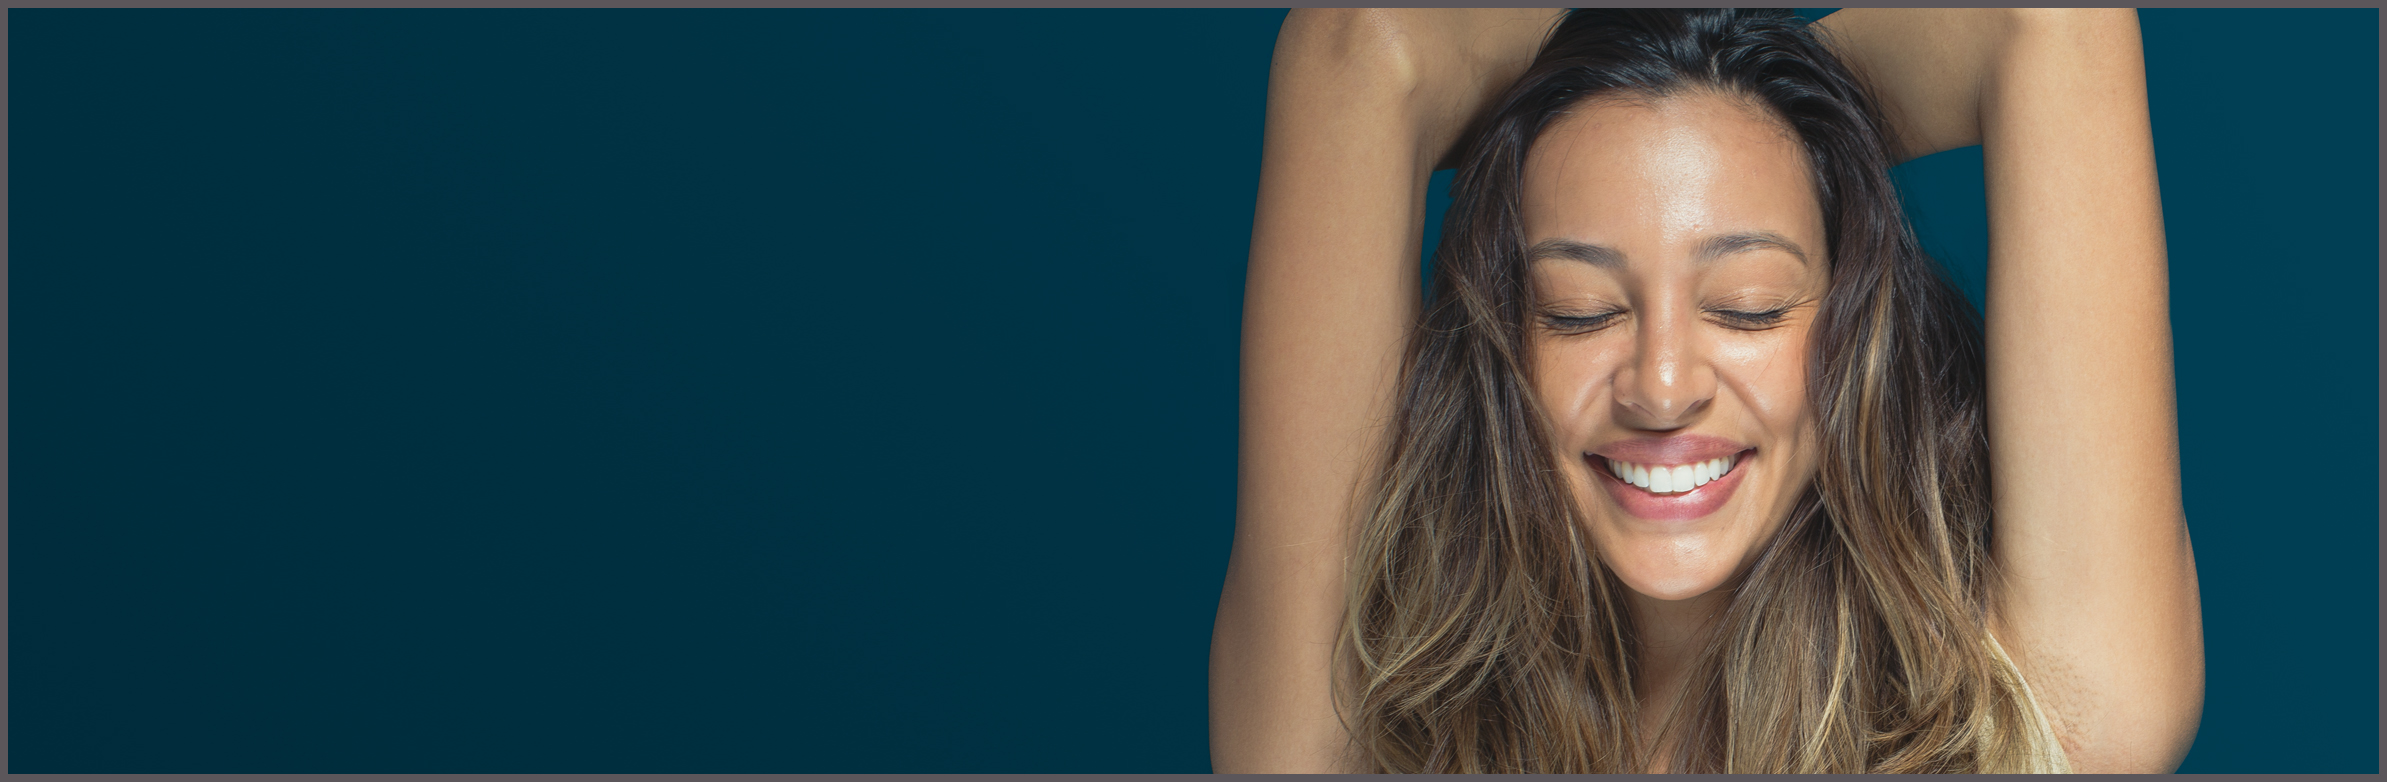 COSMETIC CARE+ SMILE.    Even with an already healthy and gorgeous smile, some want that smile to be elevated even further. The Dental Boutique provides an array of treatments to help actualize a desired potential.